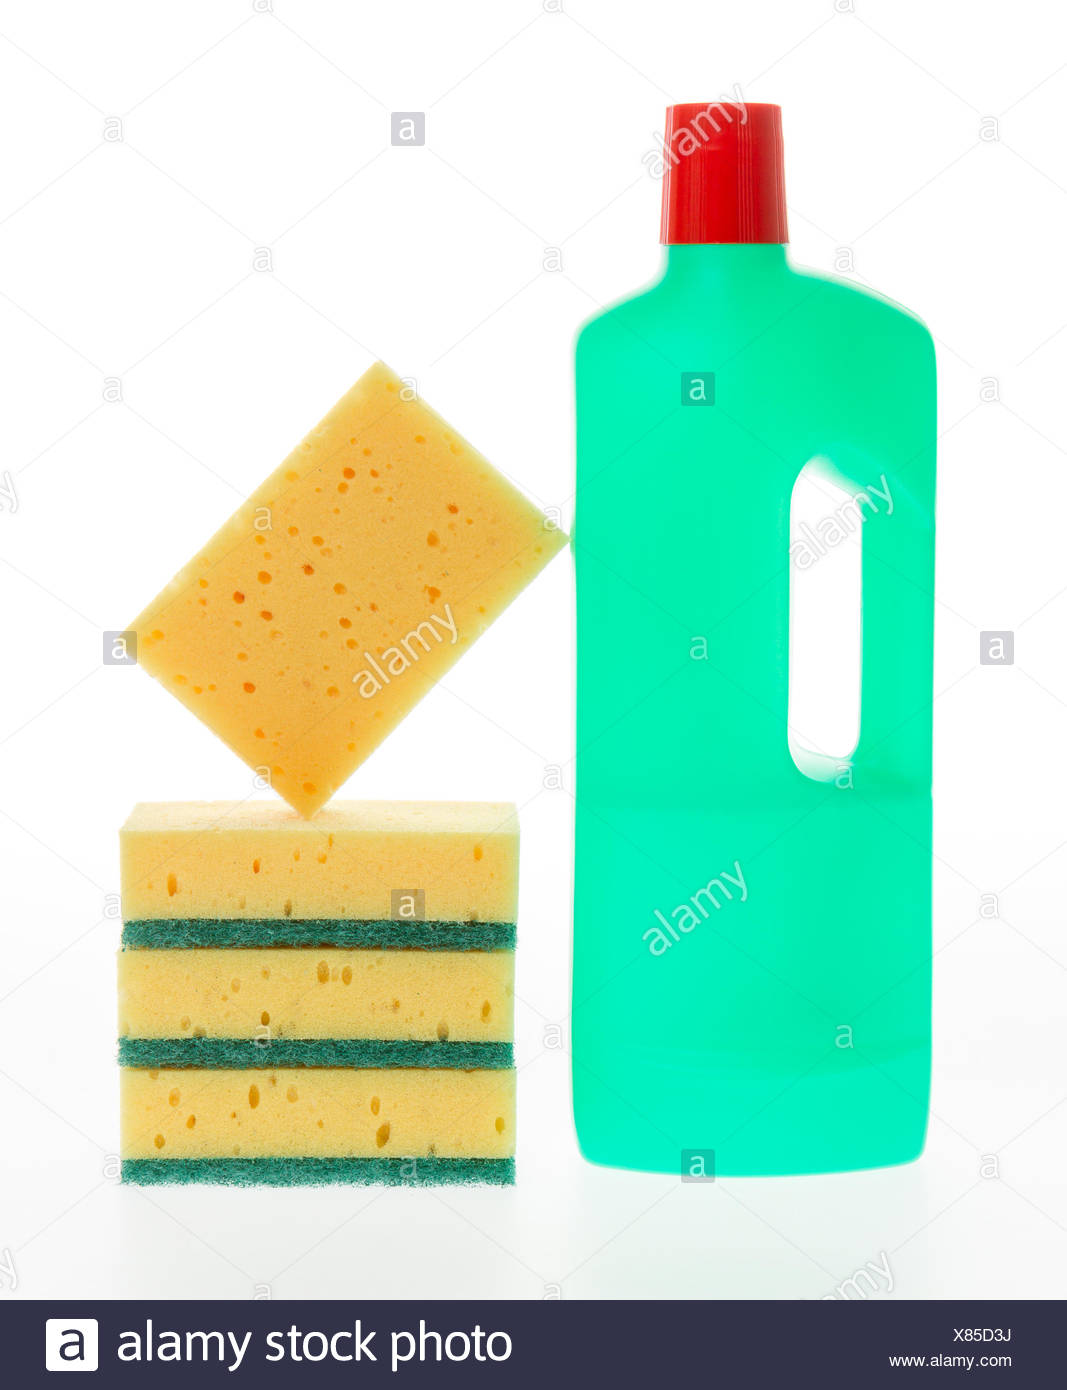 House cleaning product Stock Photo